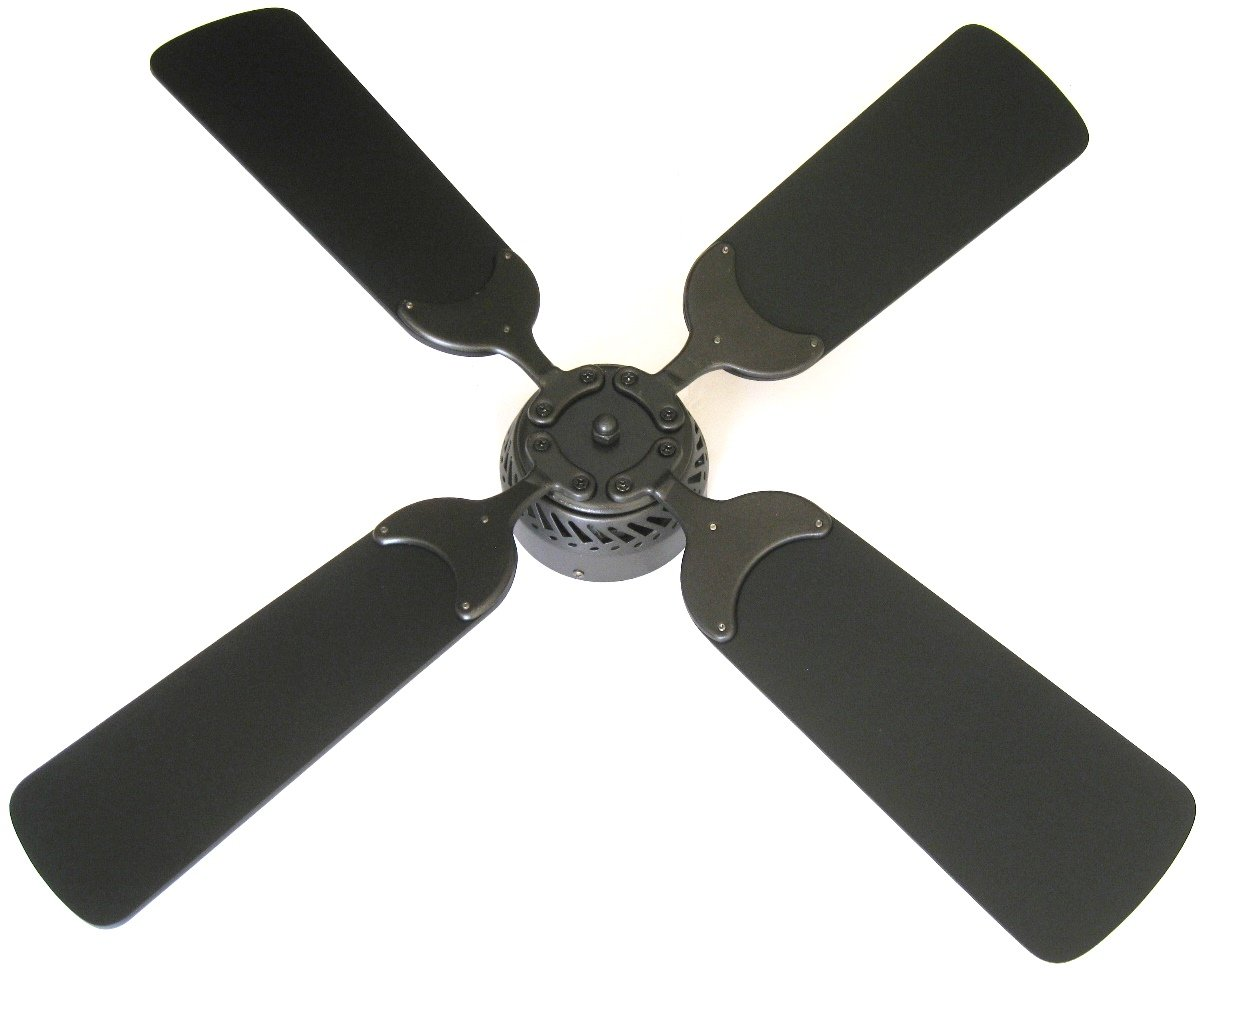 Global Electric 36-inch Non-Brush Ceiling Fan for RV, Oil Rubbed Bronze Finish with Wall Control. Black Blades